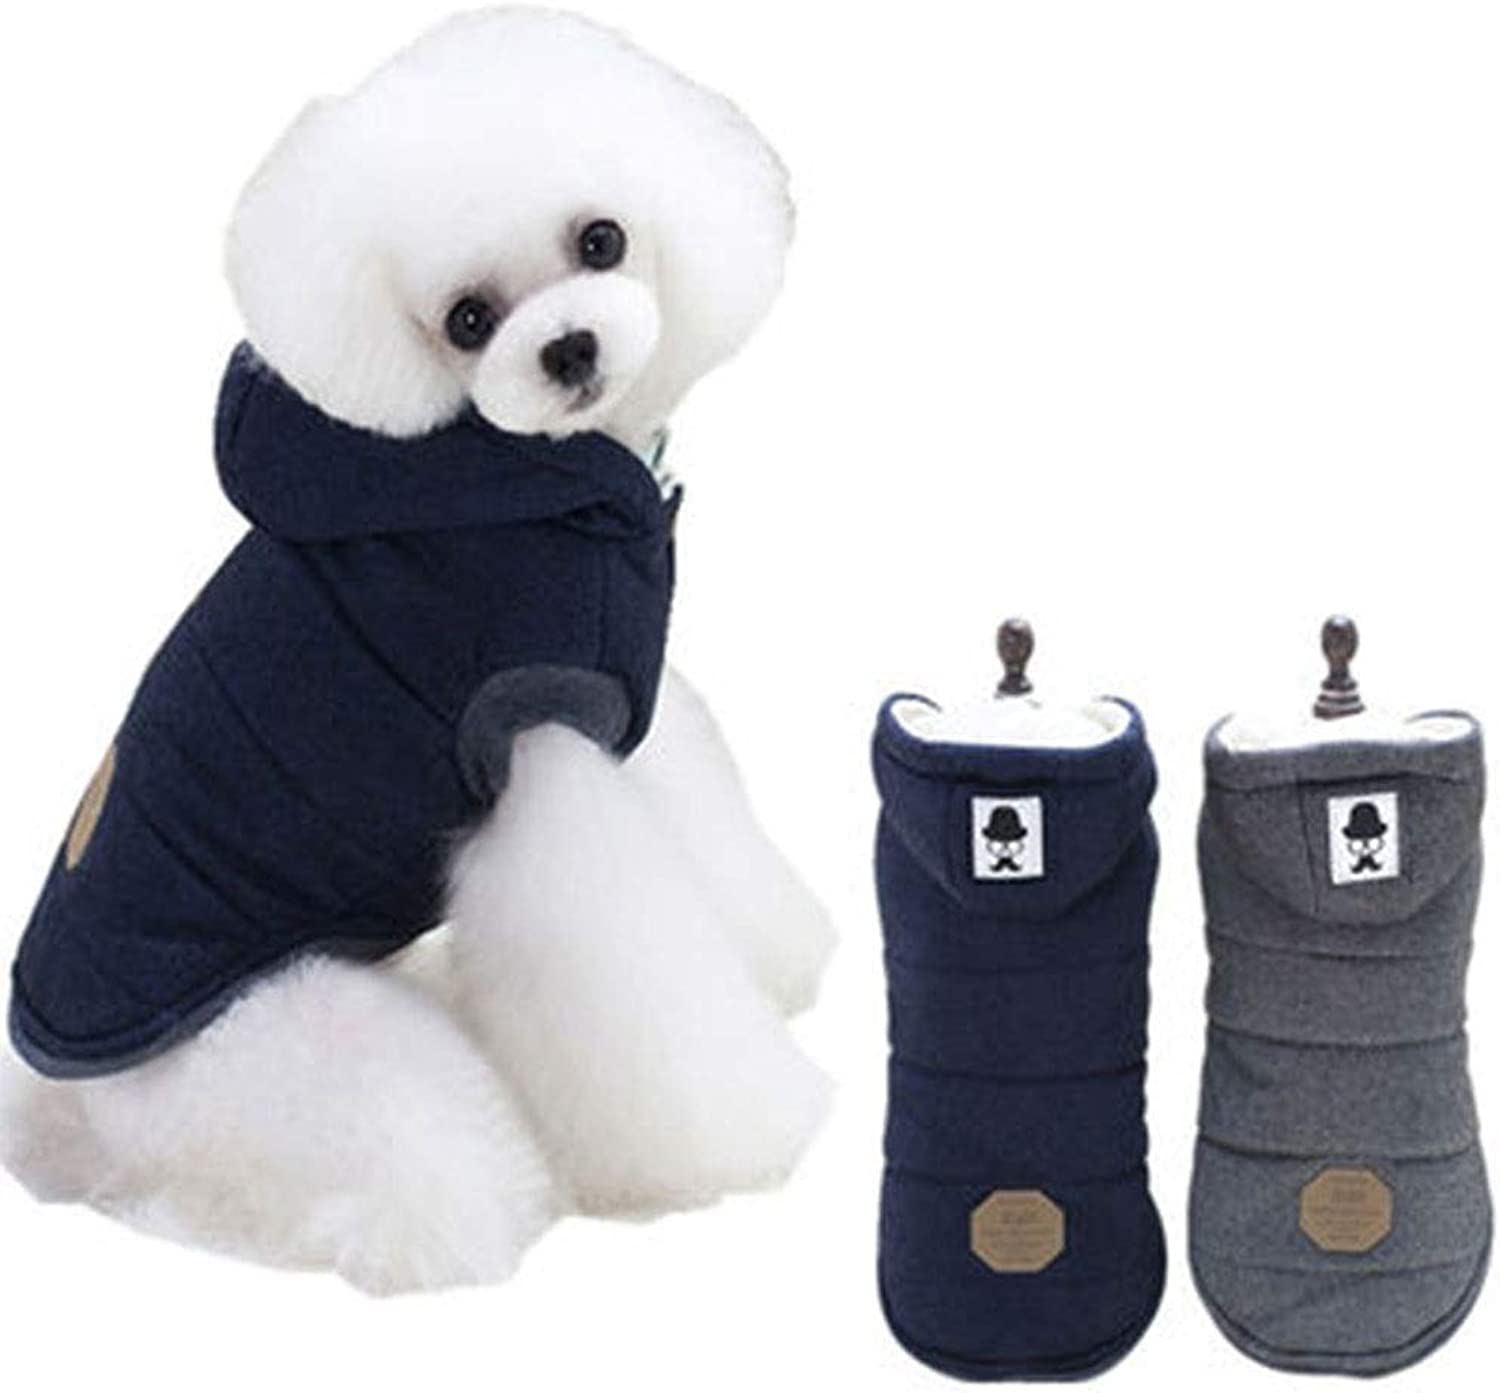 HONGNA Pet dog clothes autumn and winter explosions moustache twolegged cotton coat small dog winter thickening pet clothes,bluee,S